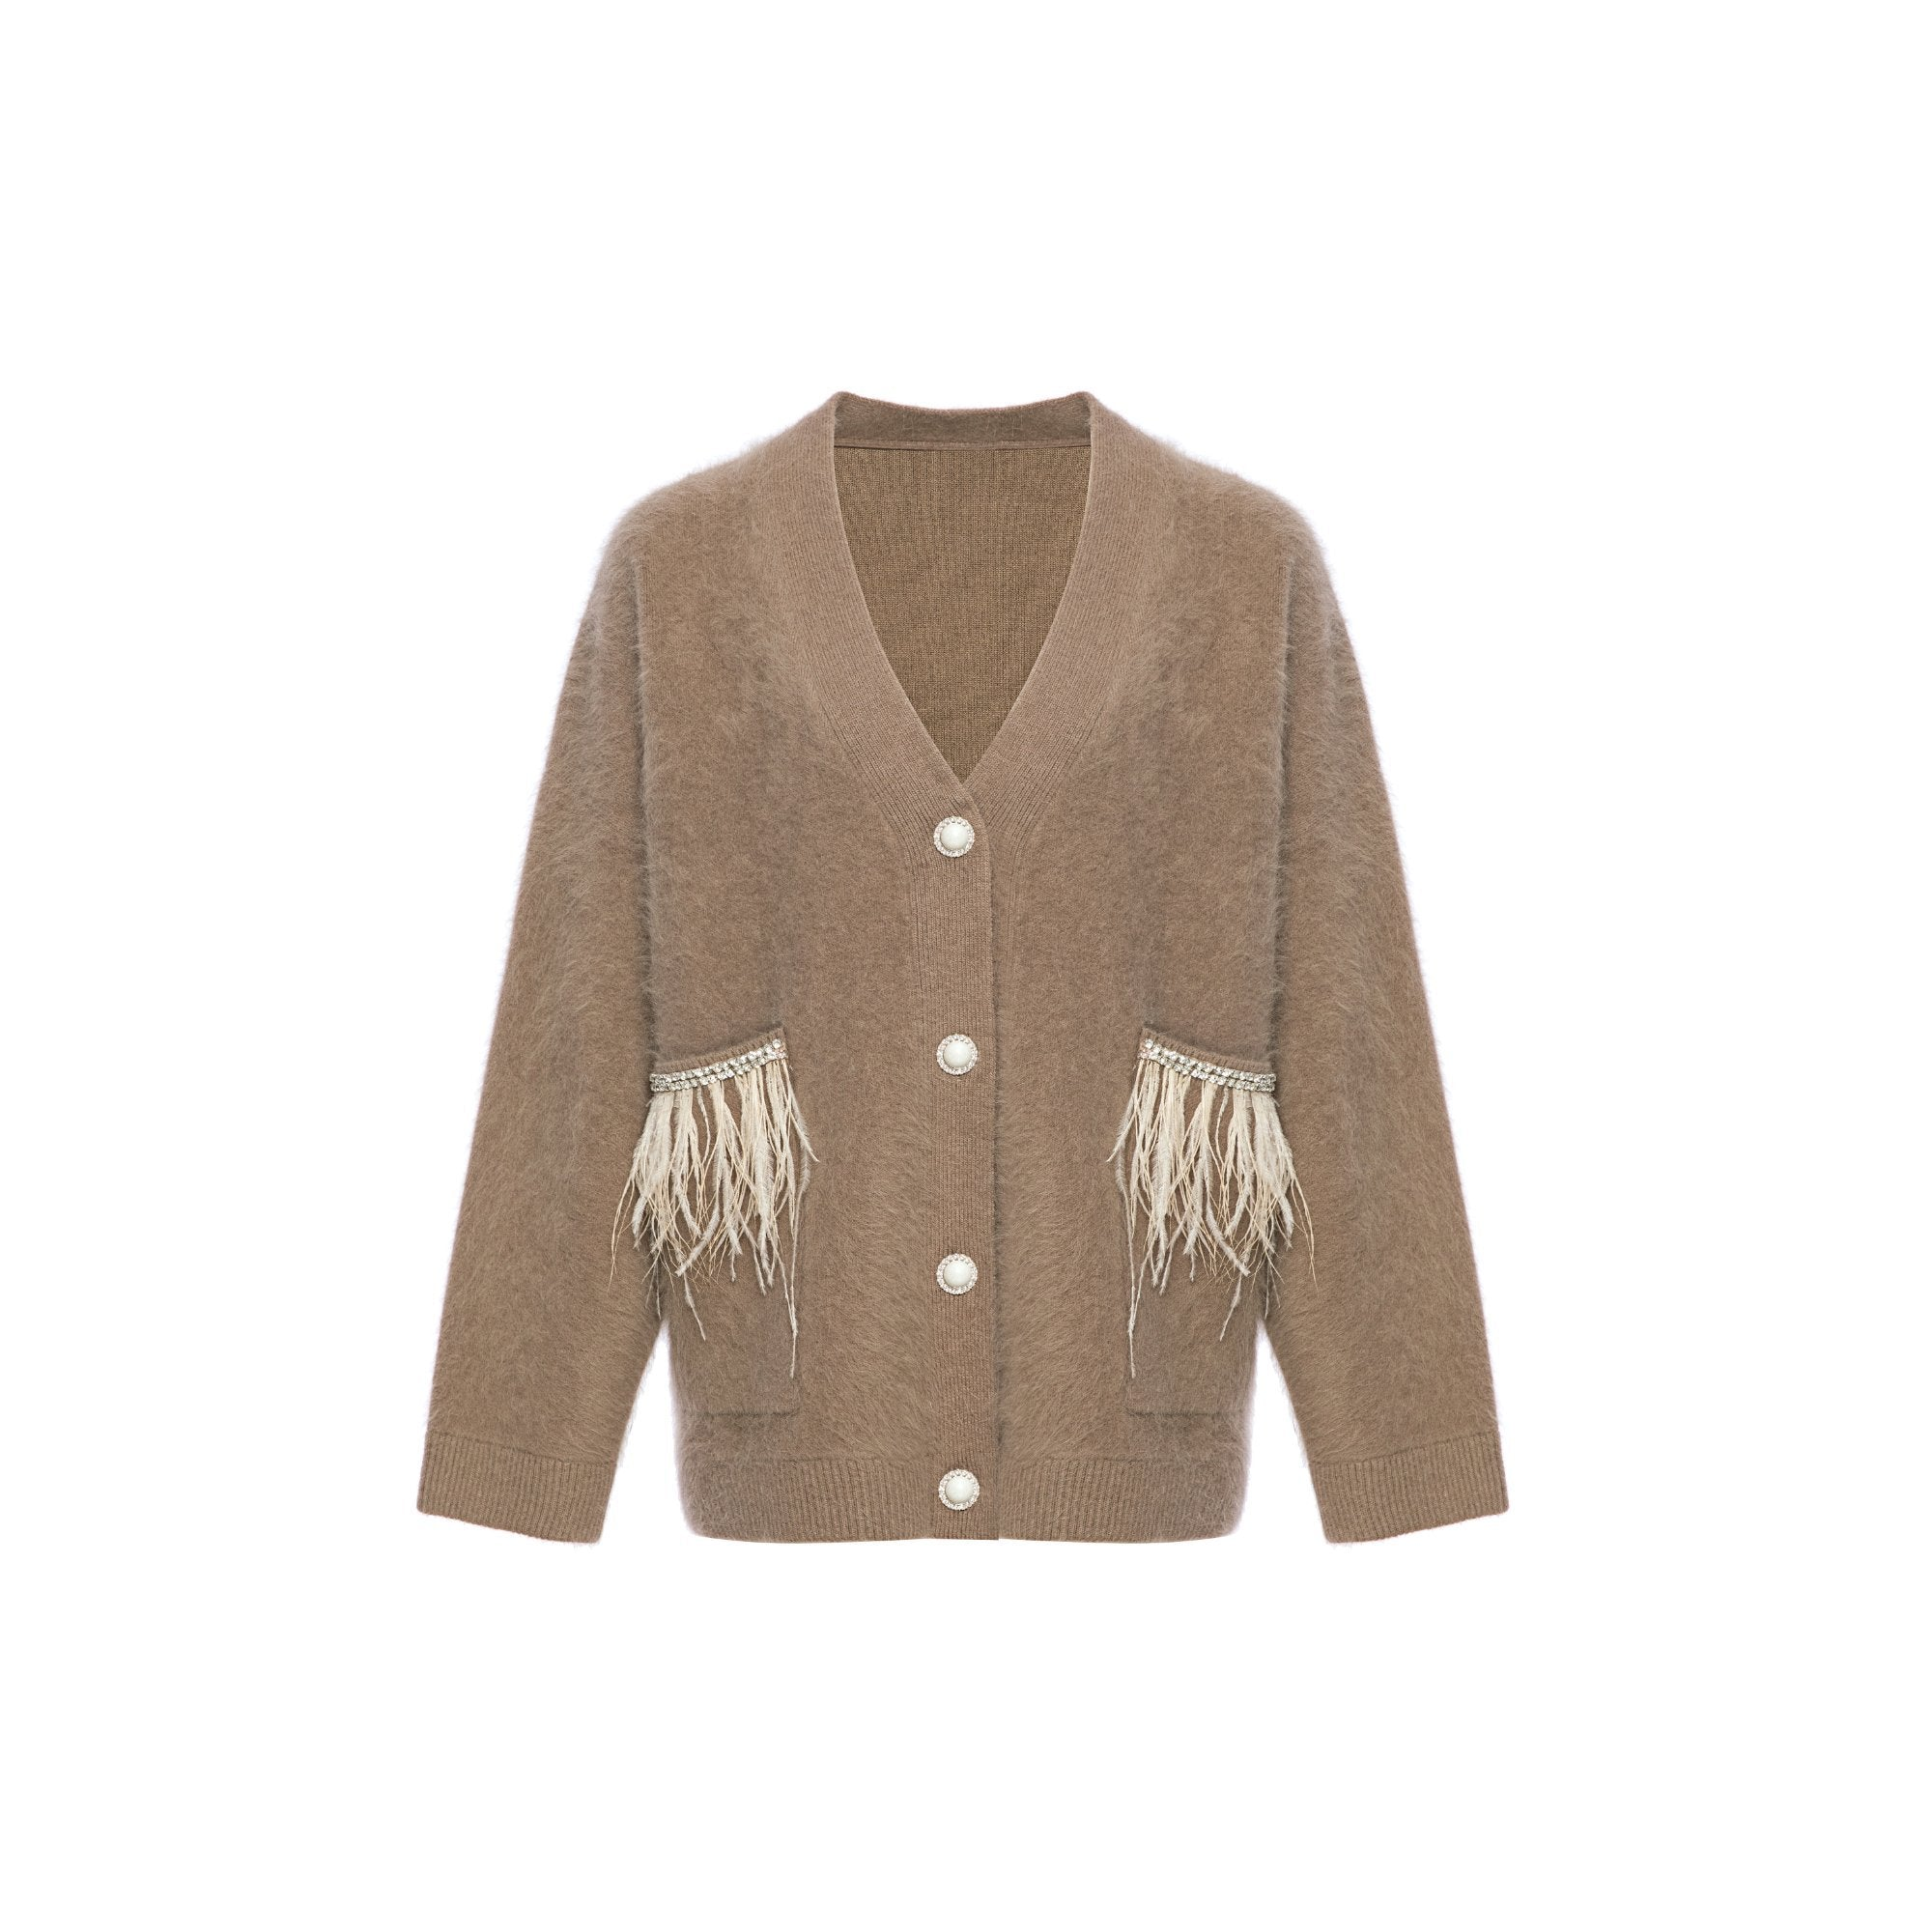 DIANA VEVINA Beige Raccoon Fur Cardigan | MADA IN CHINA